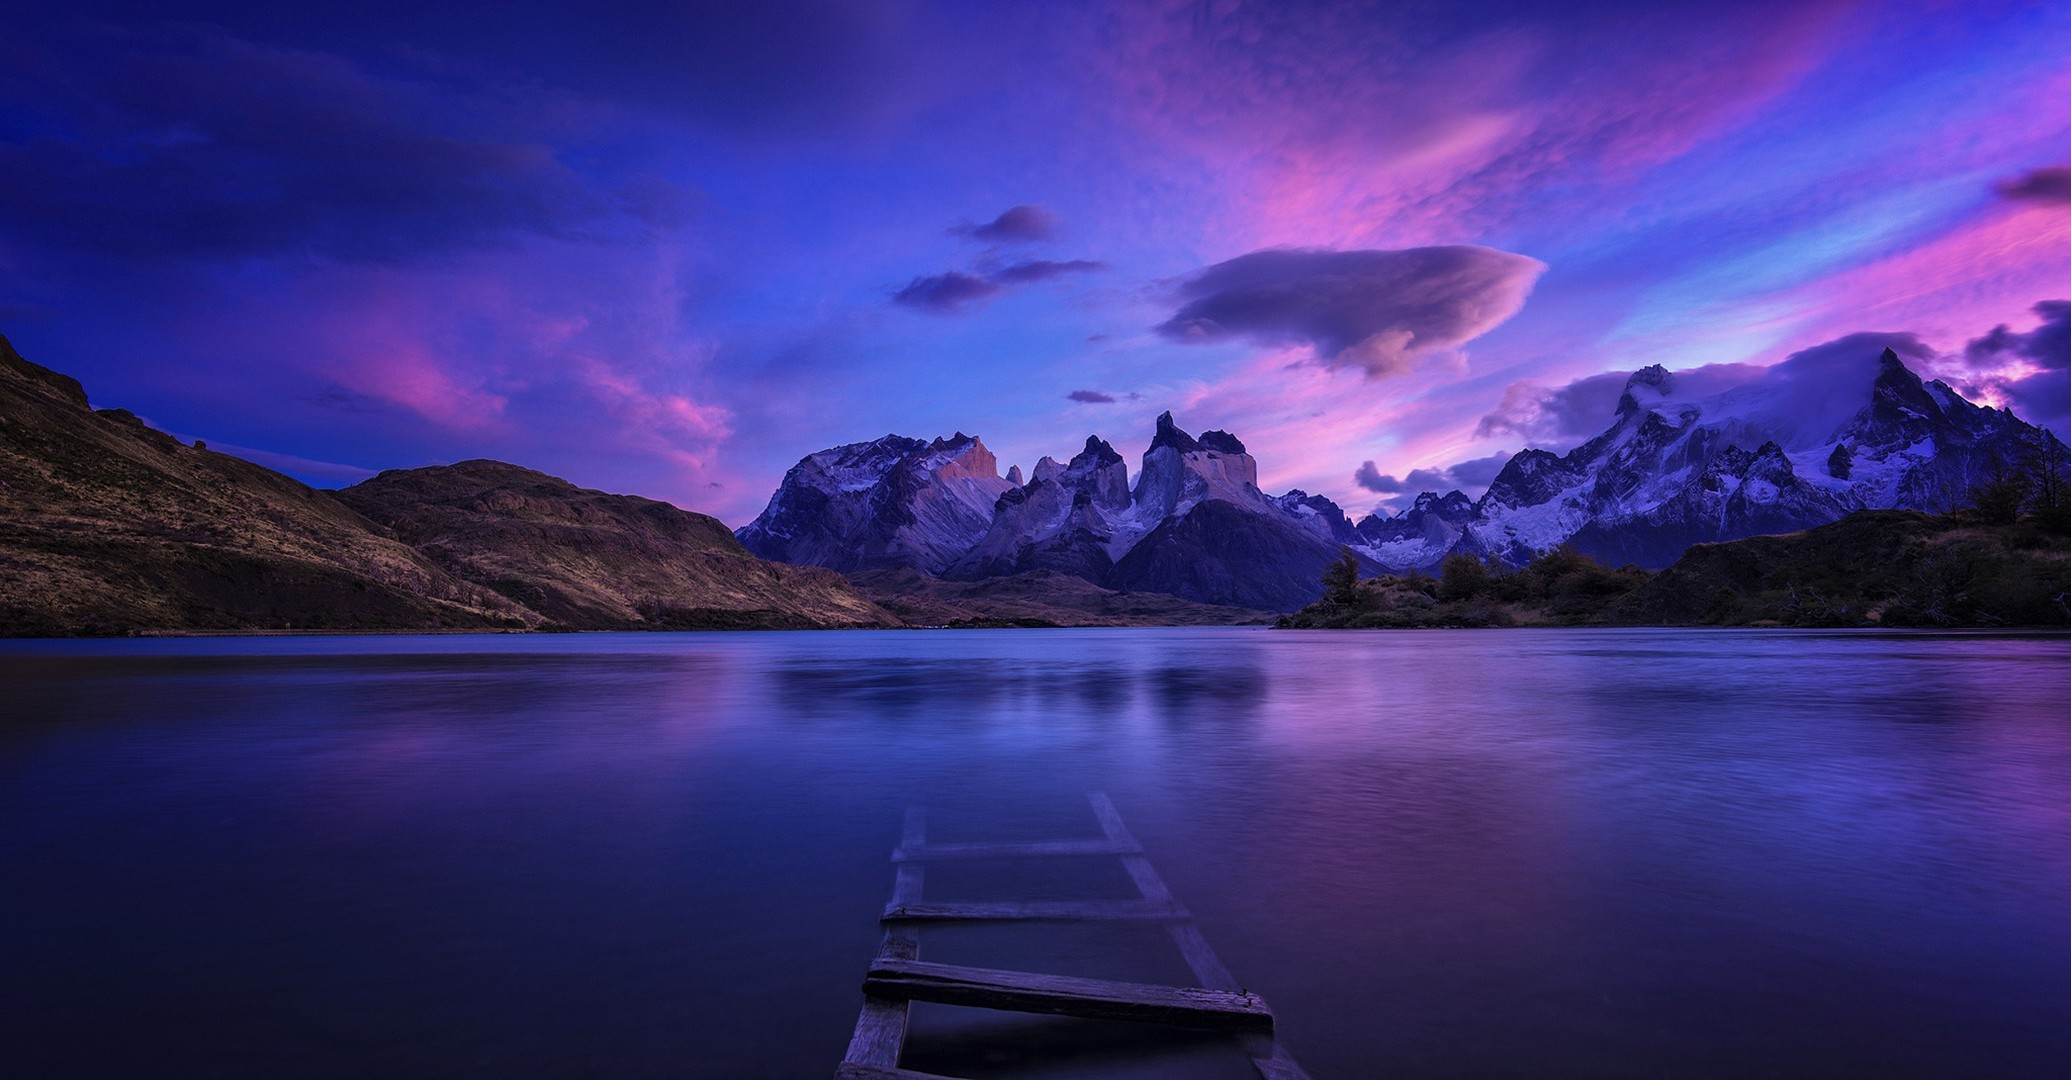 Fall Wallpaper For Large Monitors Patagonia Panorama Nature Water Landscape Chile